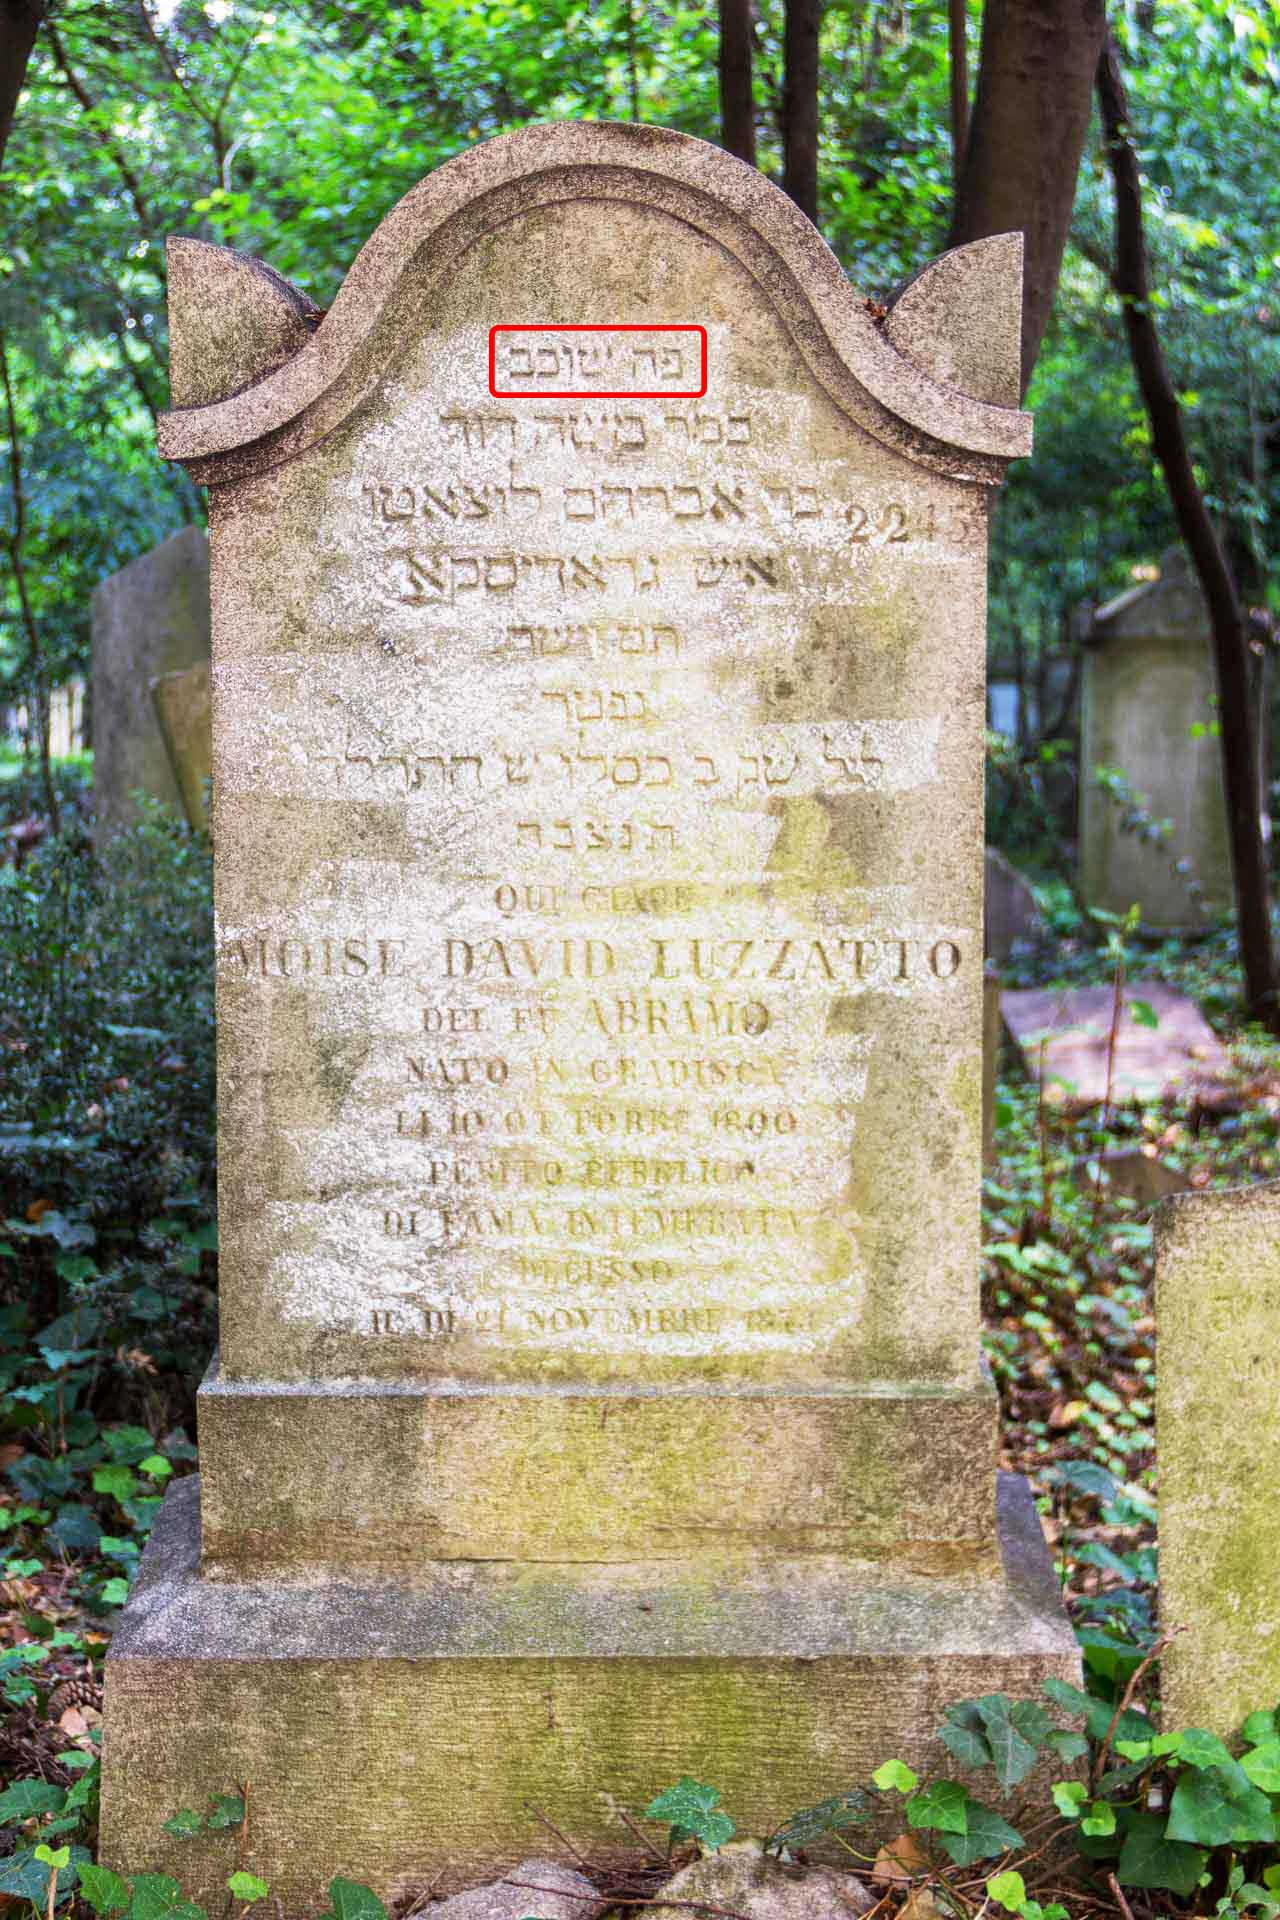 Grabstein / gravestone Moise David Luzzatto, 21/11/1873